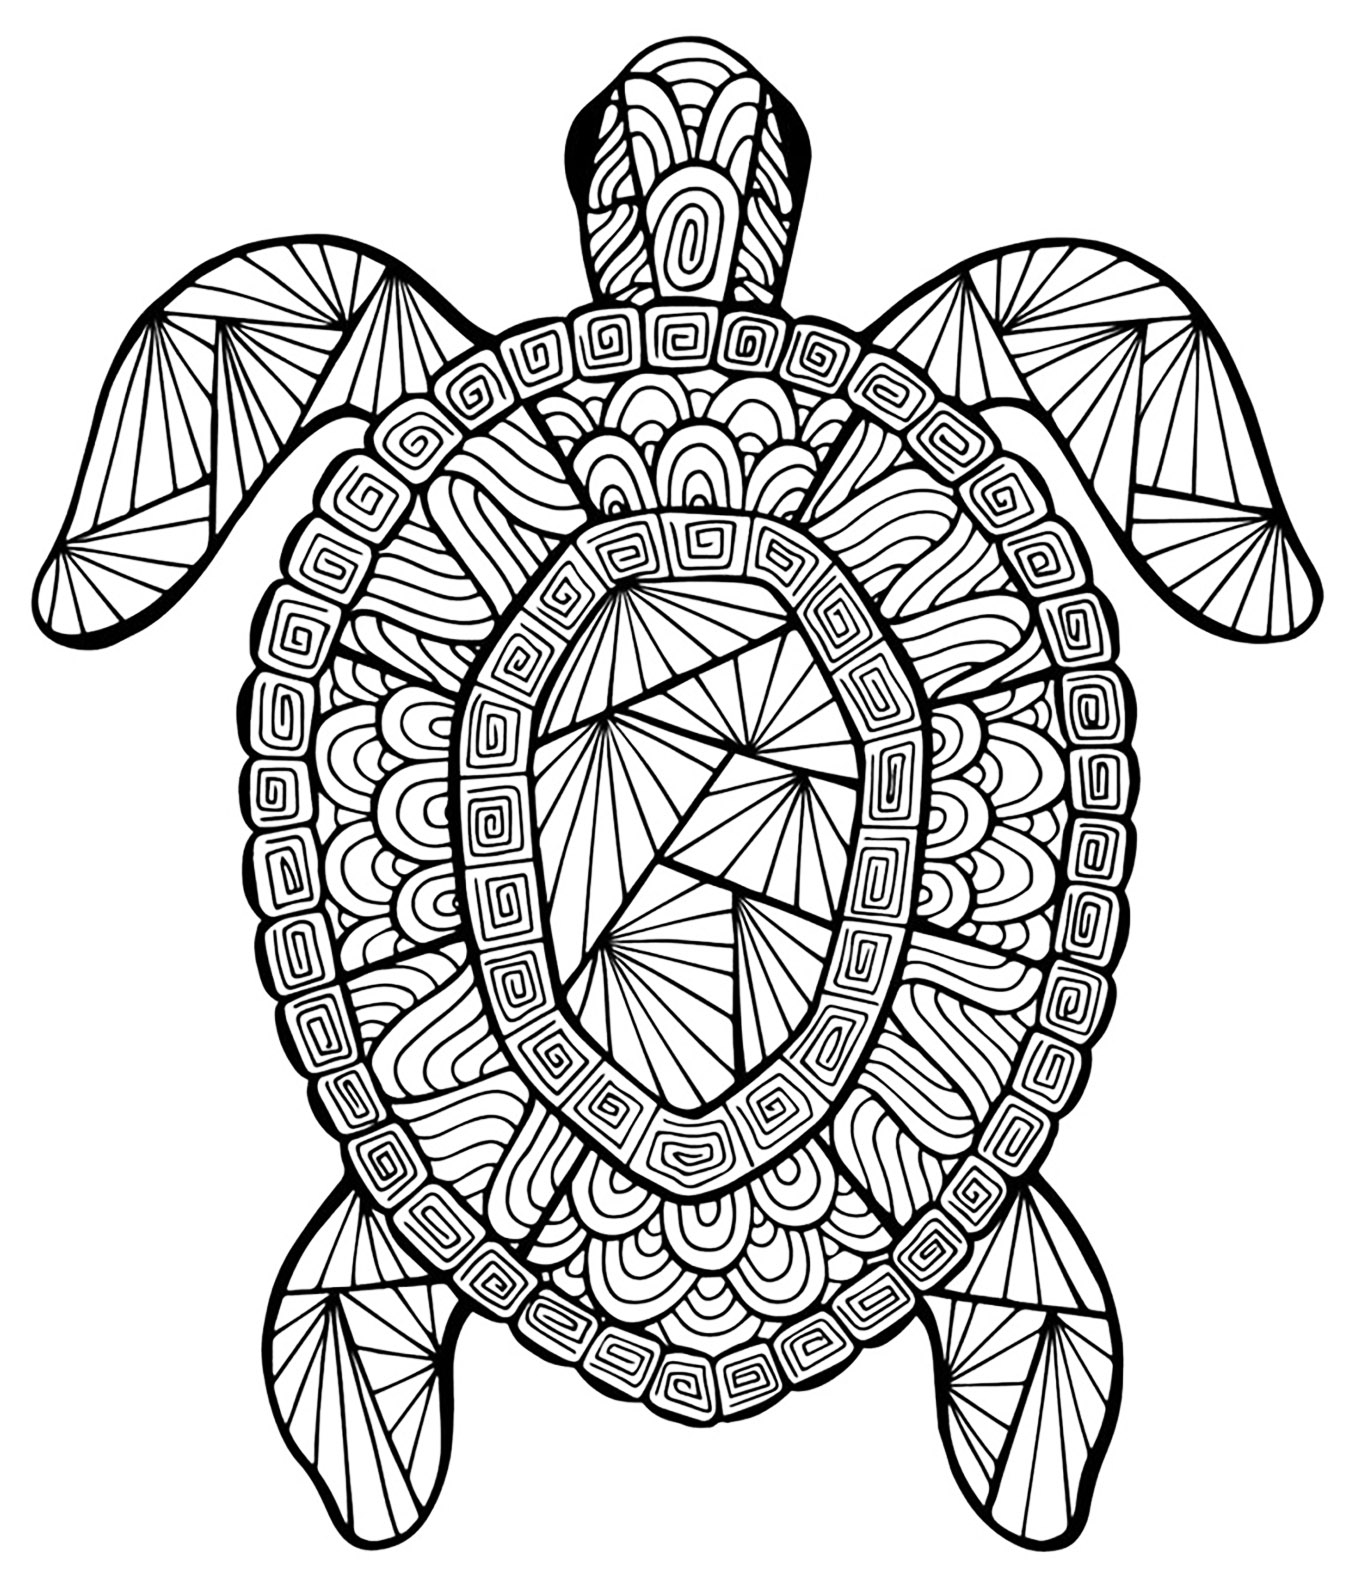 turtle coloring pictures turtle outline drawing at getdrawings free download turtle pictures coloring